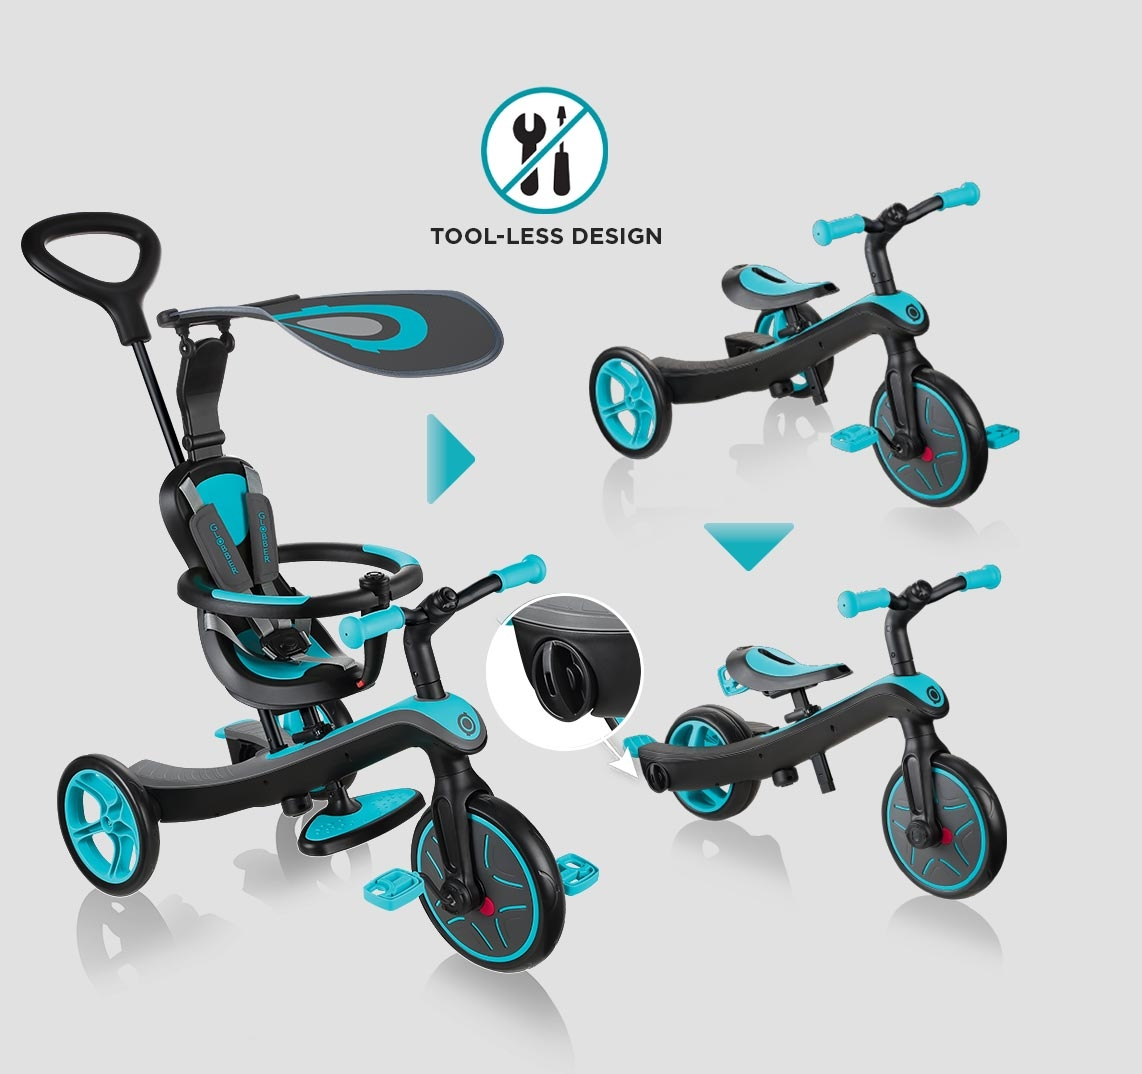 EXPLORER-TRIKE-tool-less-trike-design-to-easily-transform-the-product